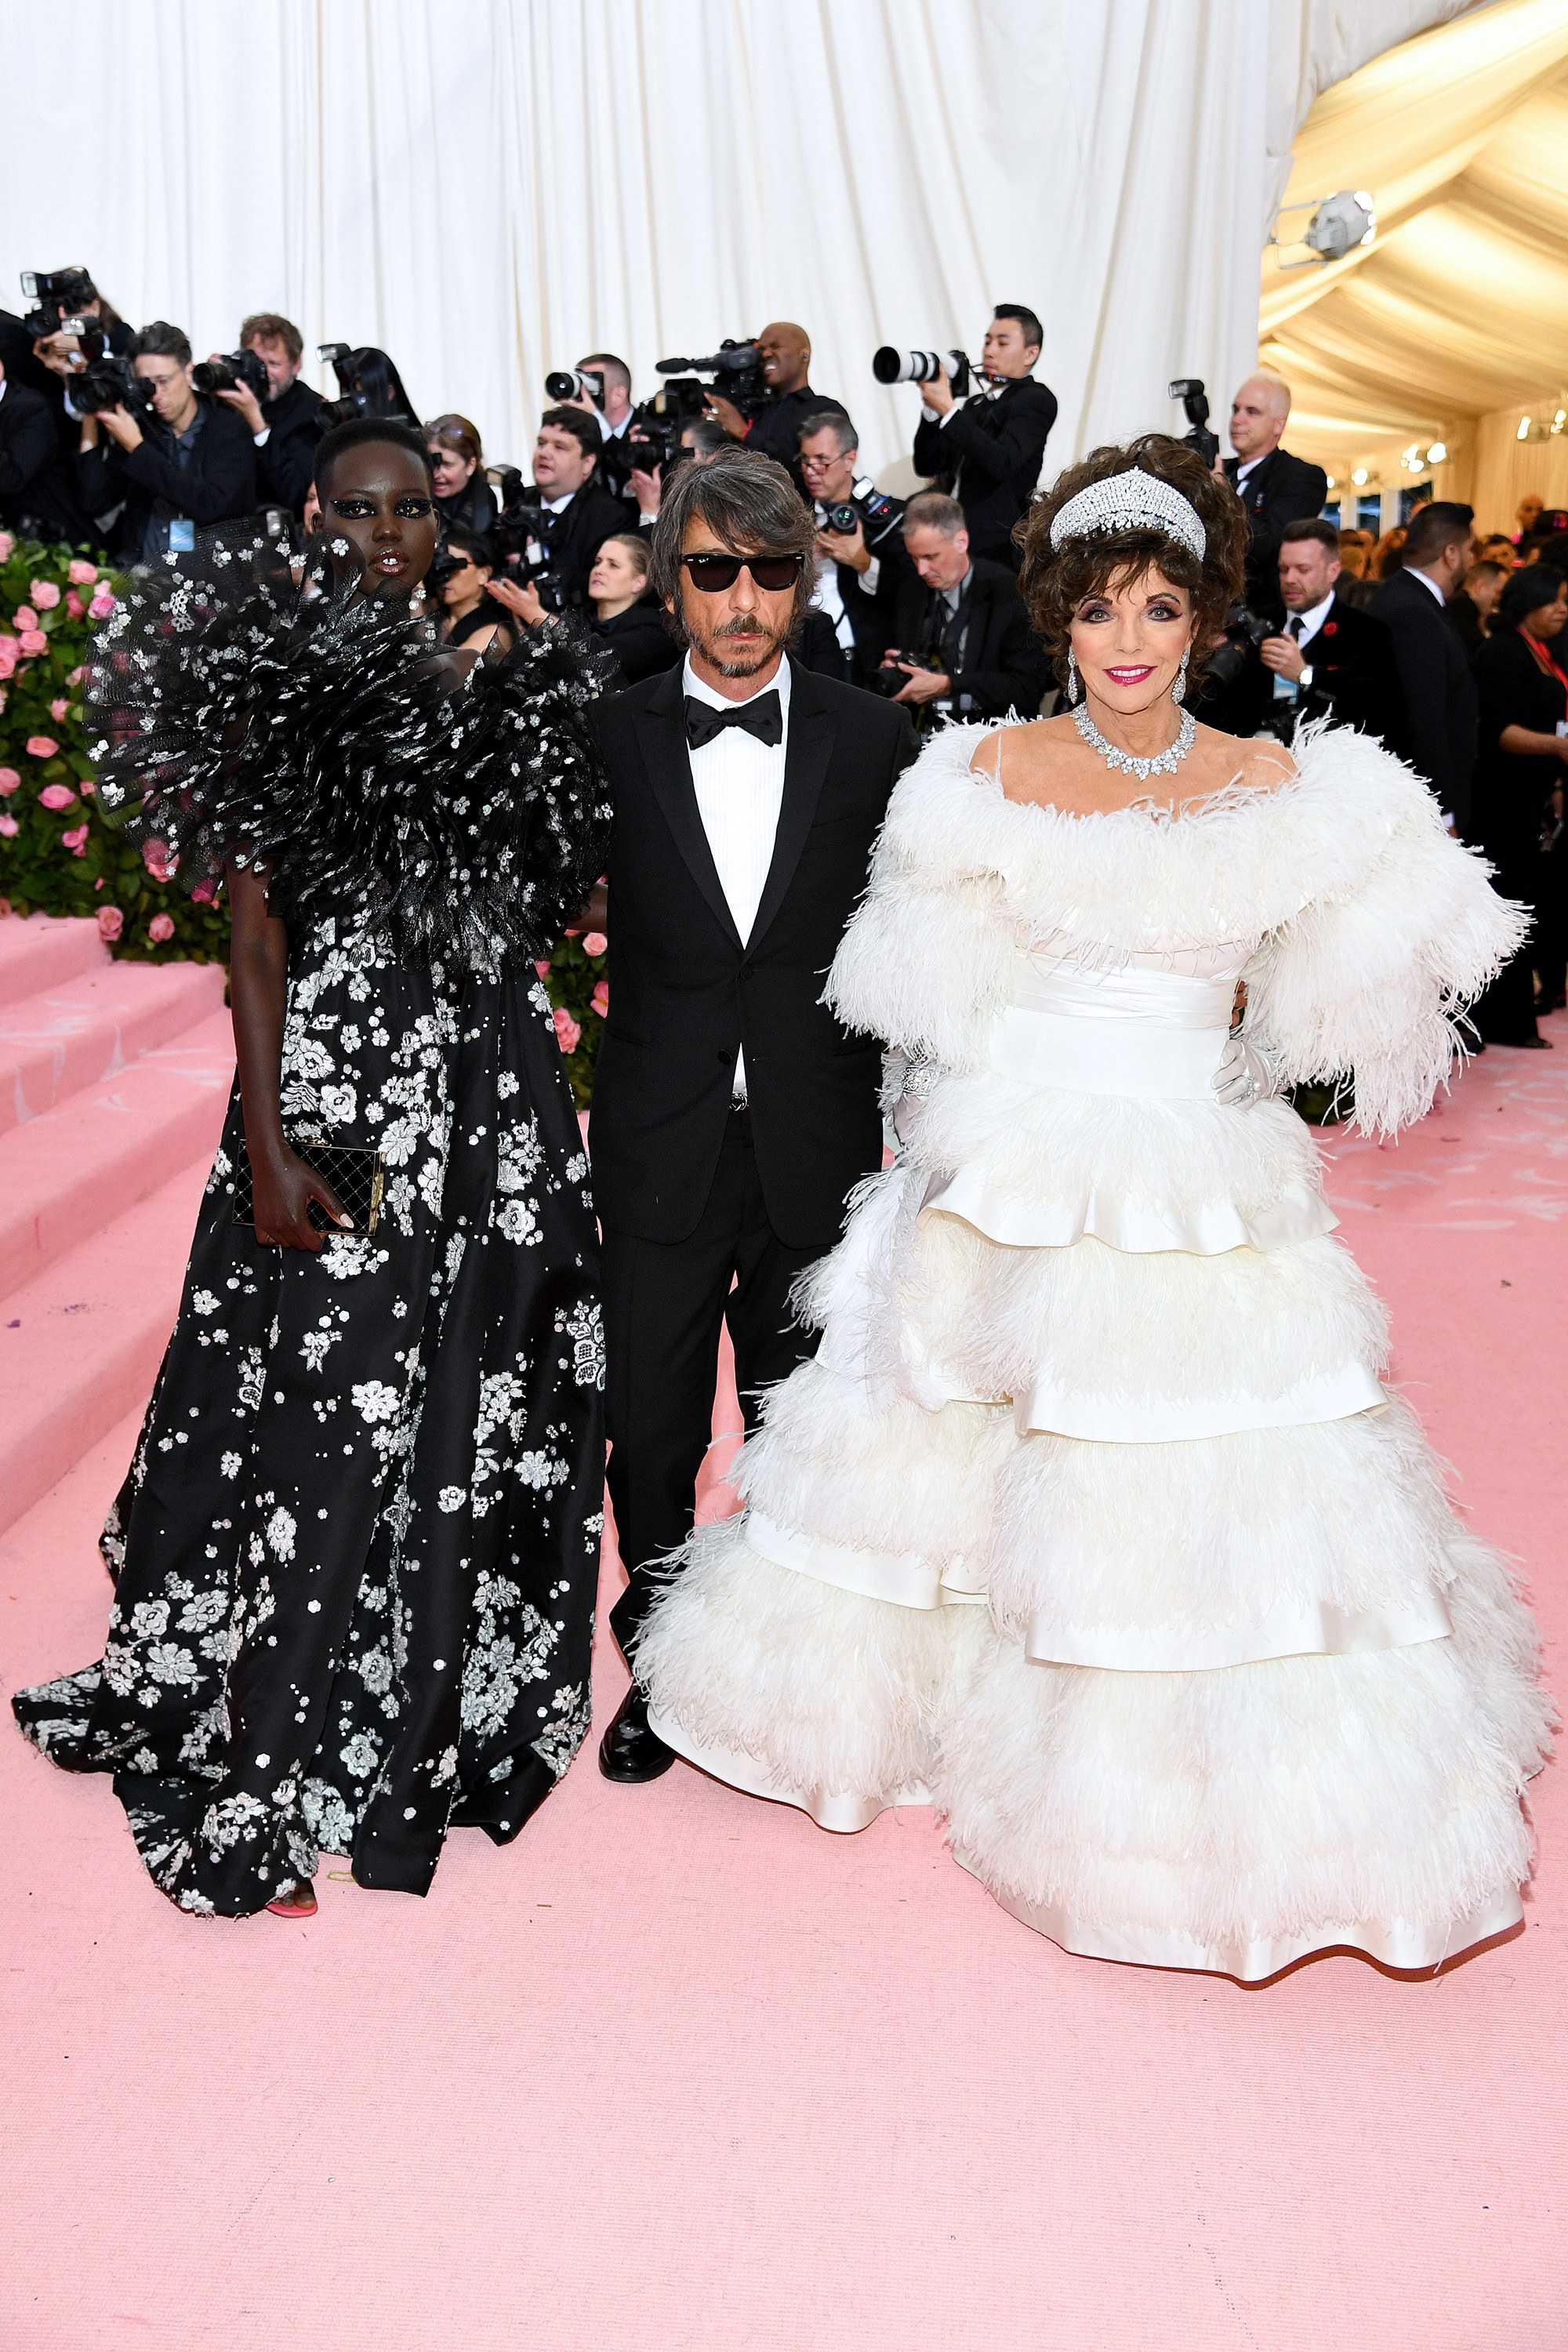 Joan Collins in Valentino did not disappoint. (Sidenote: Adut looks gorgeous in the extreme.)